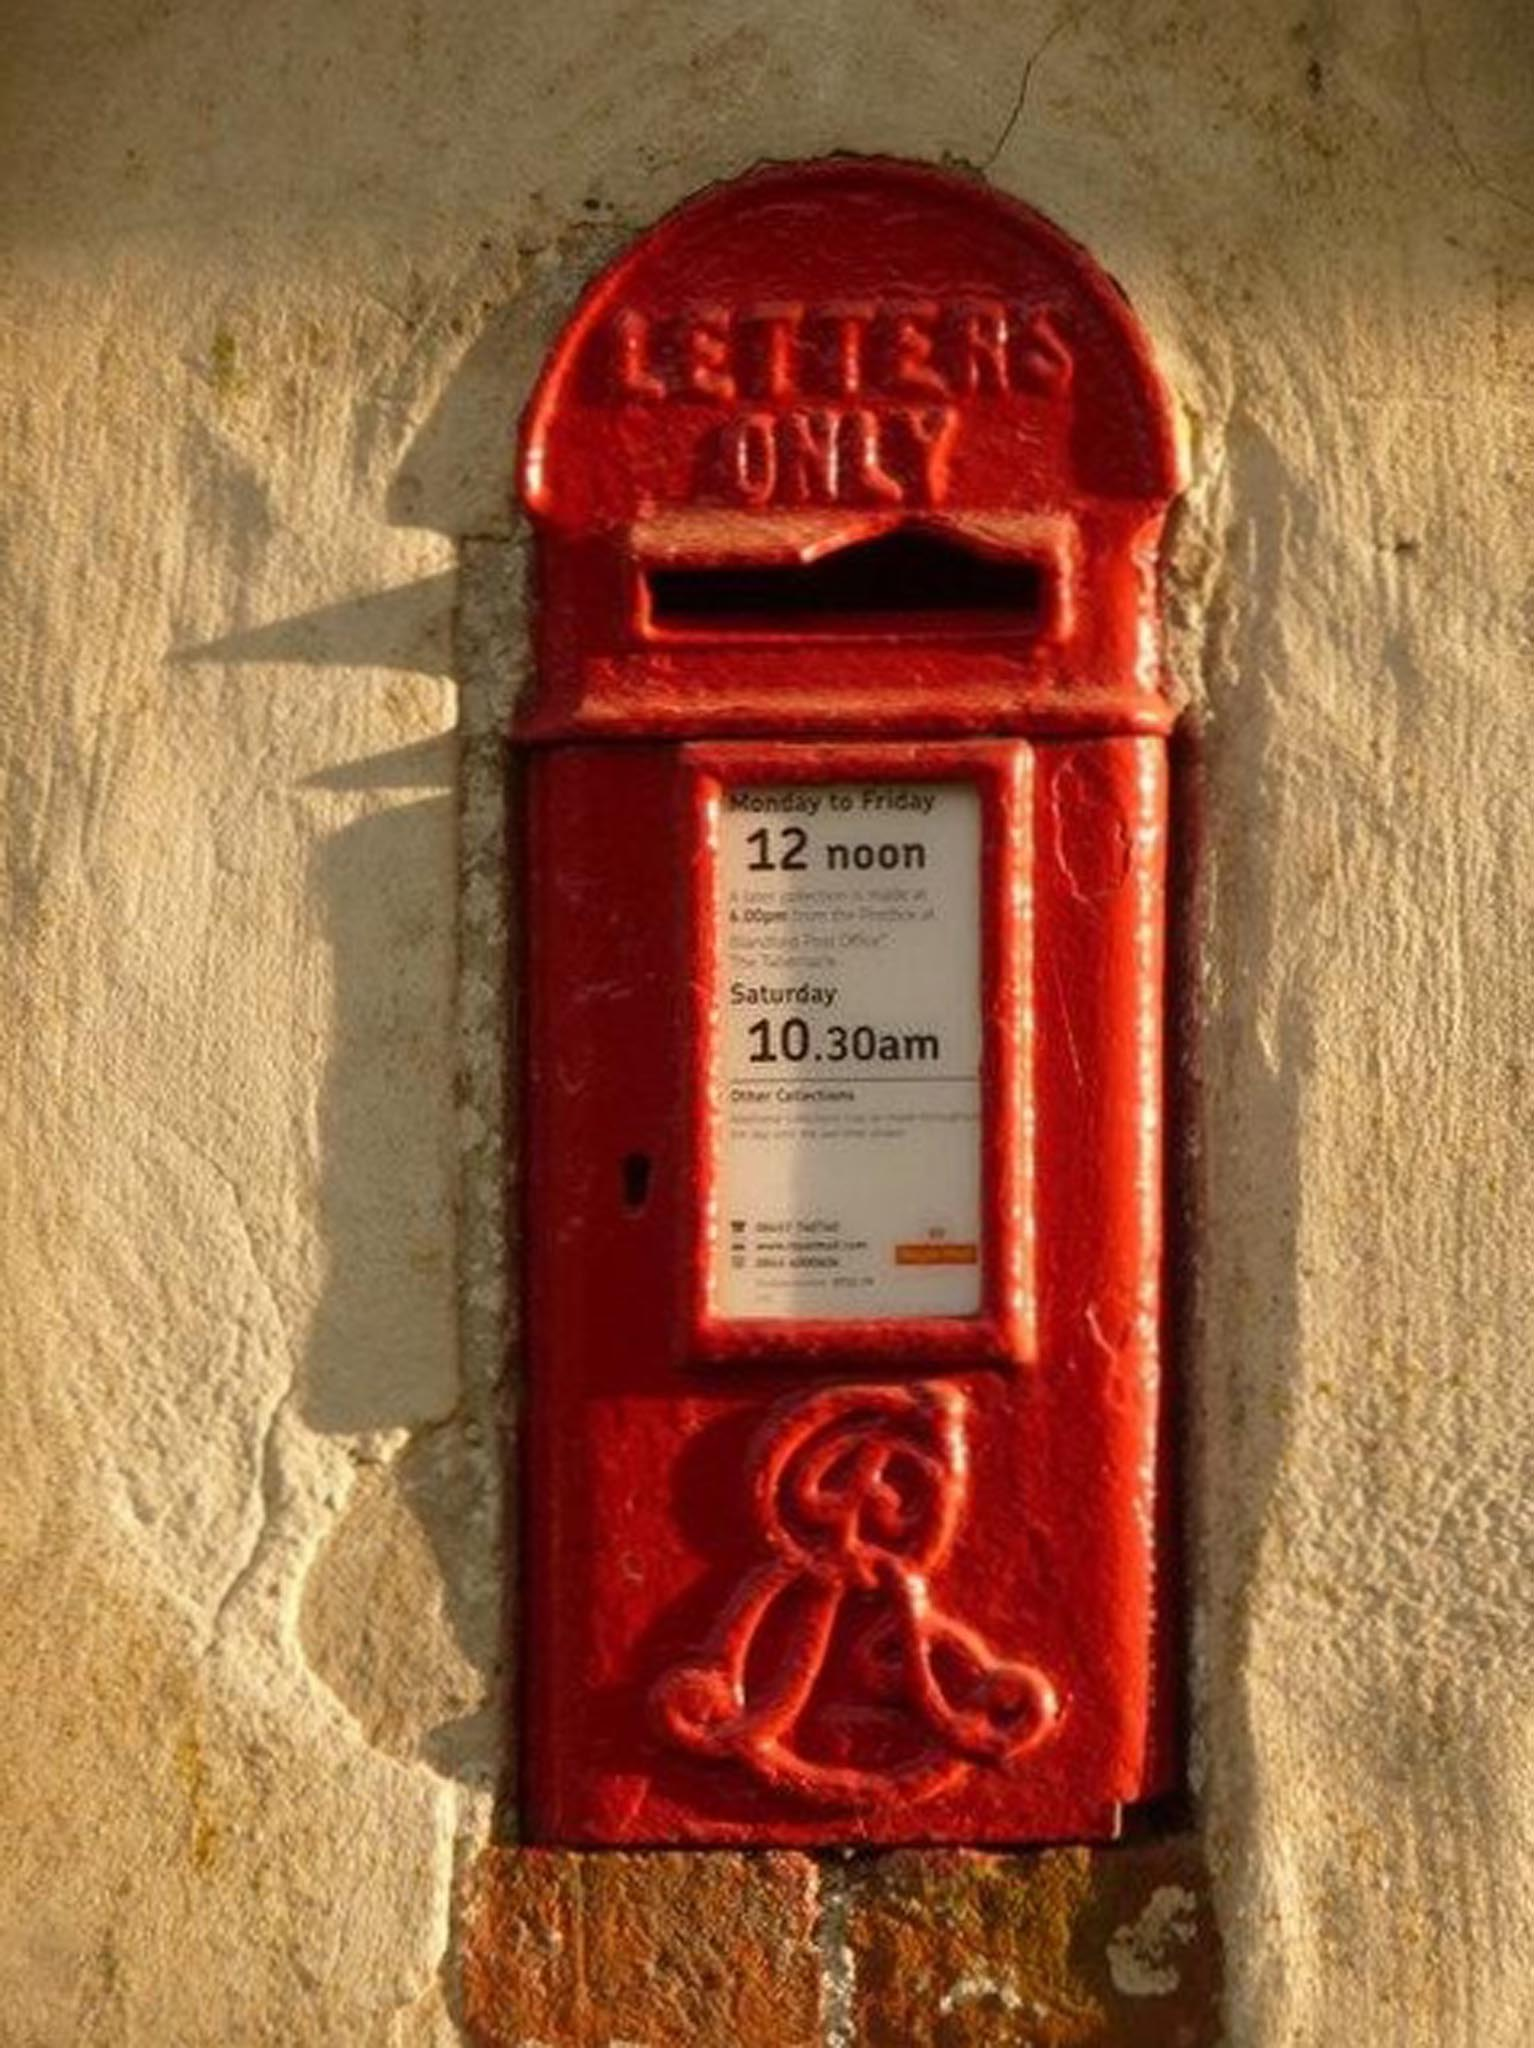 E7R lamp box 1900s, Dorset. Chris Downer